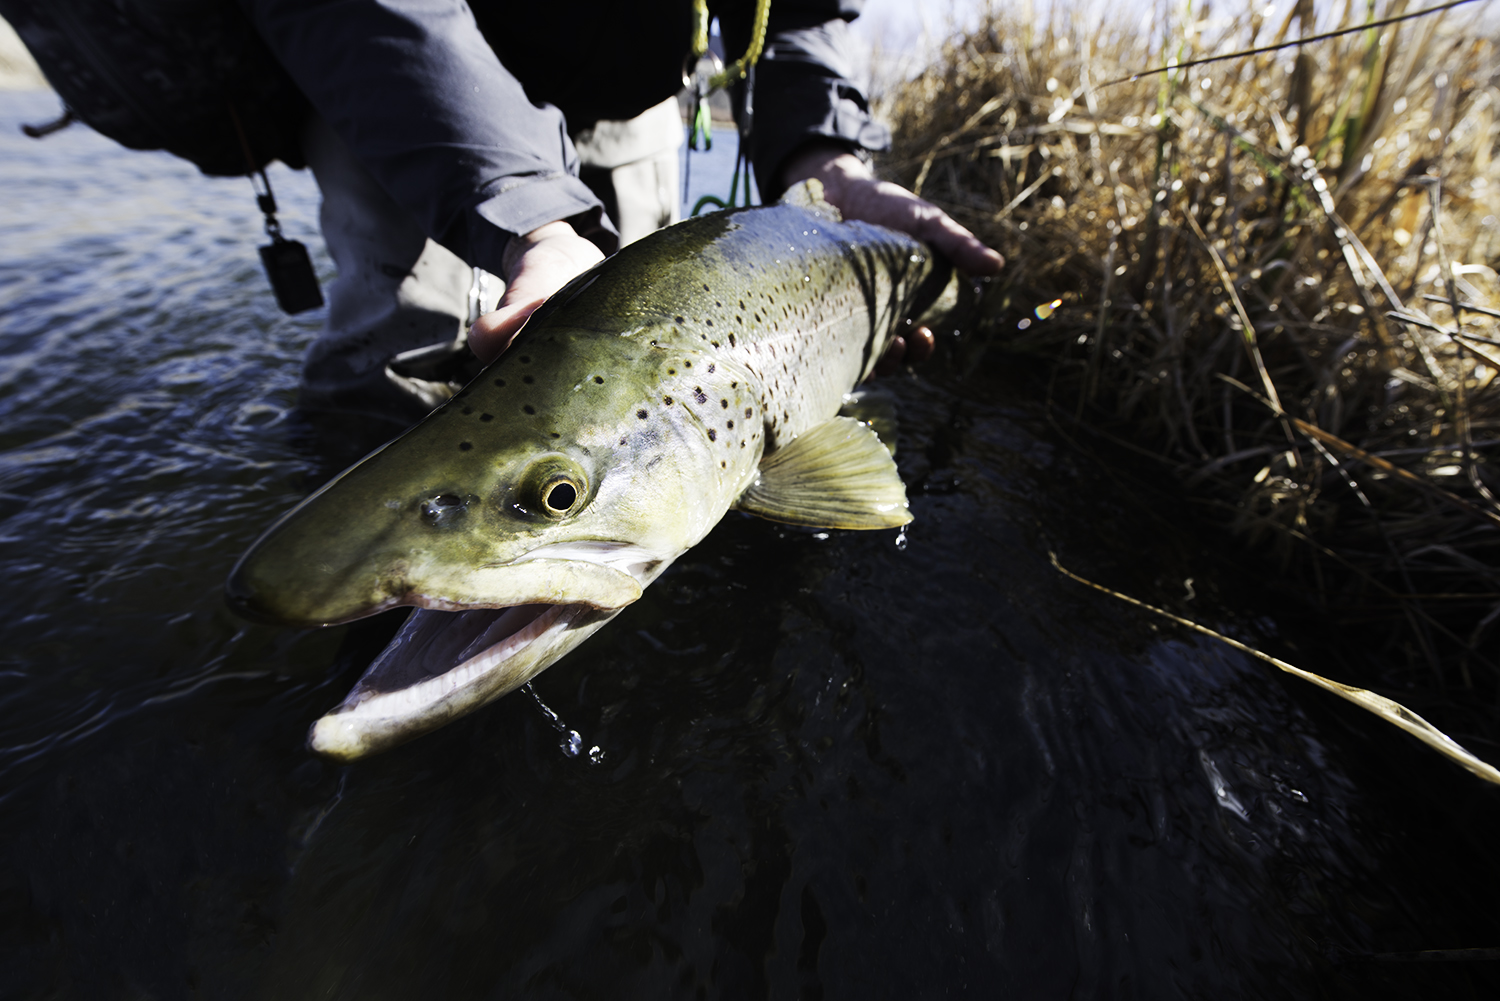 A beautiful brown trout caught yesterday (2/5/18) on Silver Creek